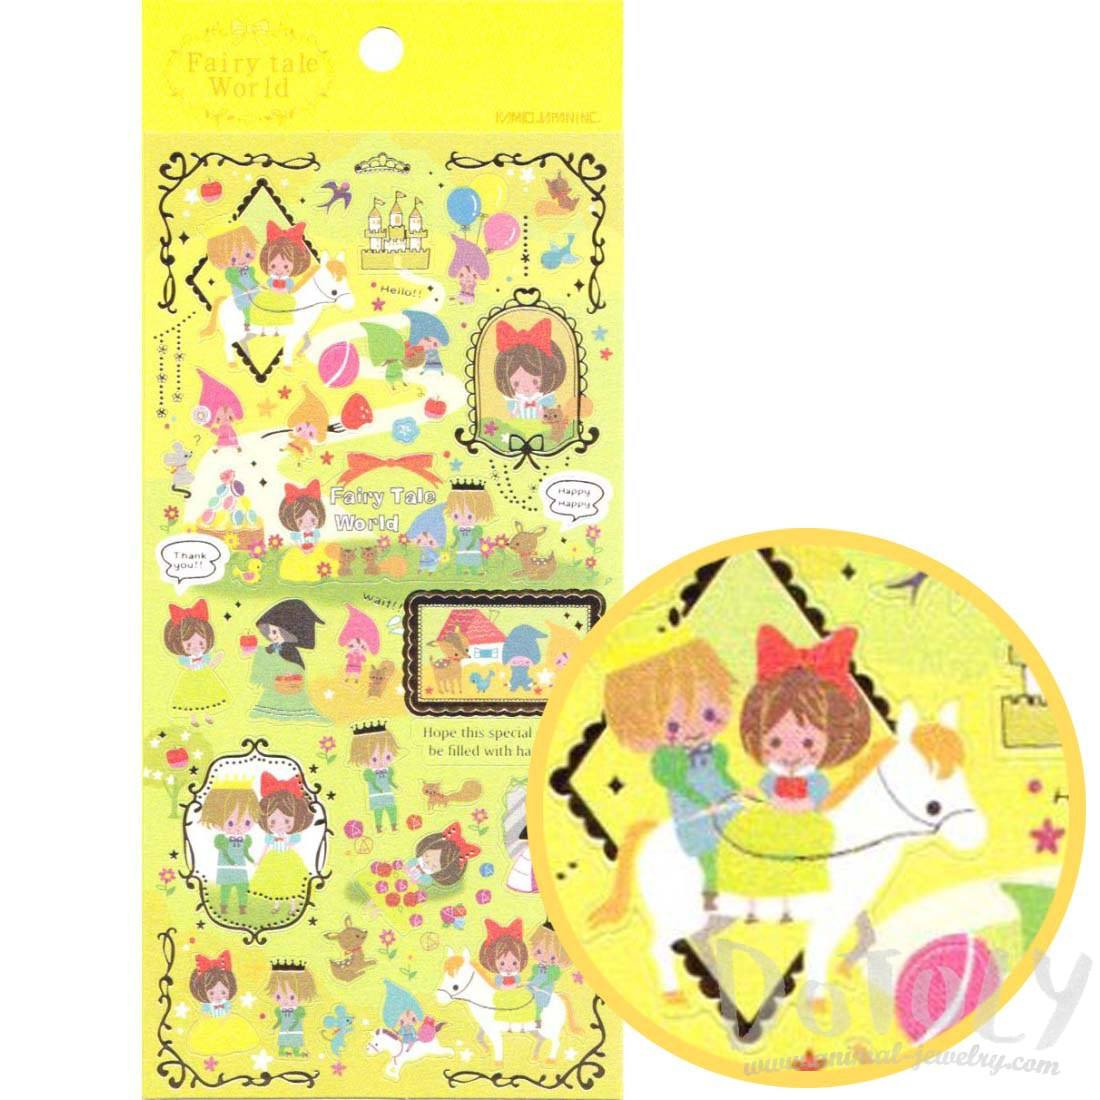 Snow White Princess Fairytale Storybook Themed Stickers